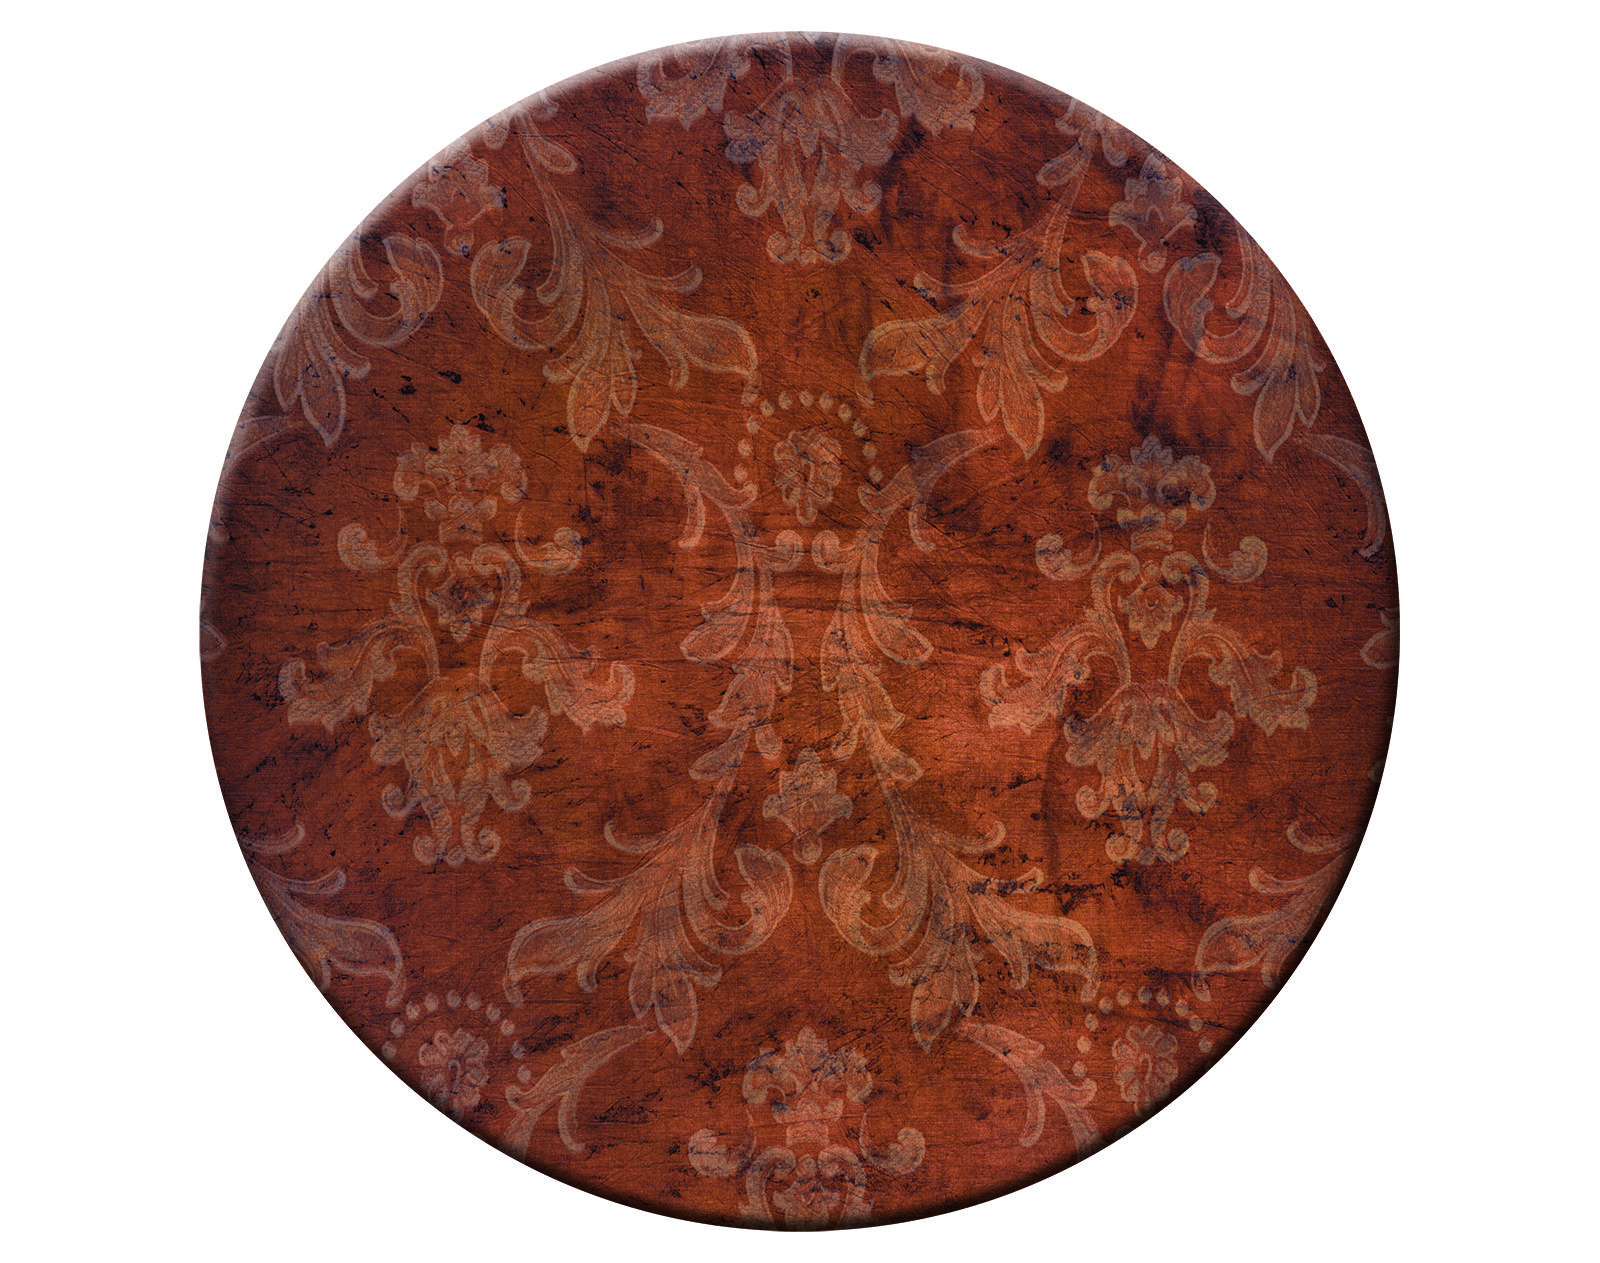 Faux Bois Round Placemats Are Hardboard Cork Backed Hard Placemats Modern Durable Heat Resistance Easy Clean Design Placemats Faux Bois Wooden Backdrops